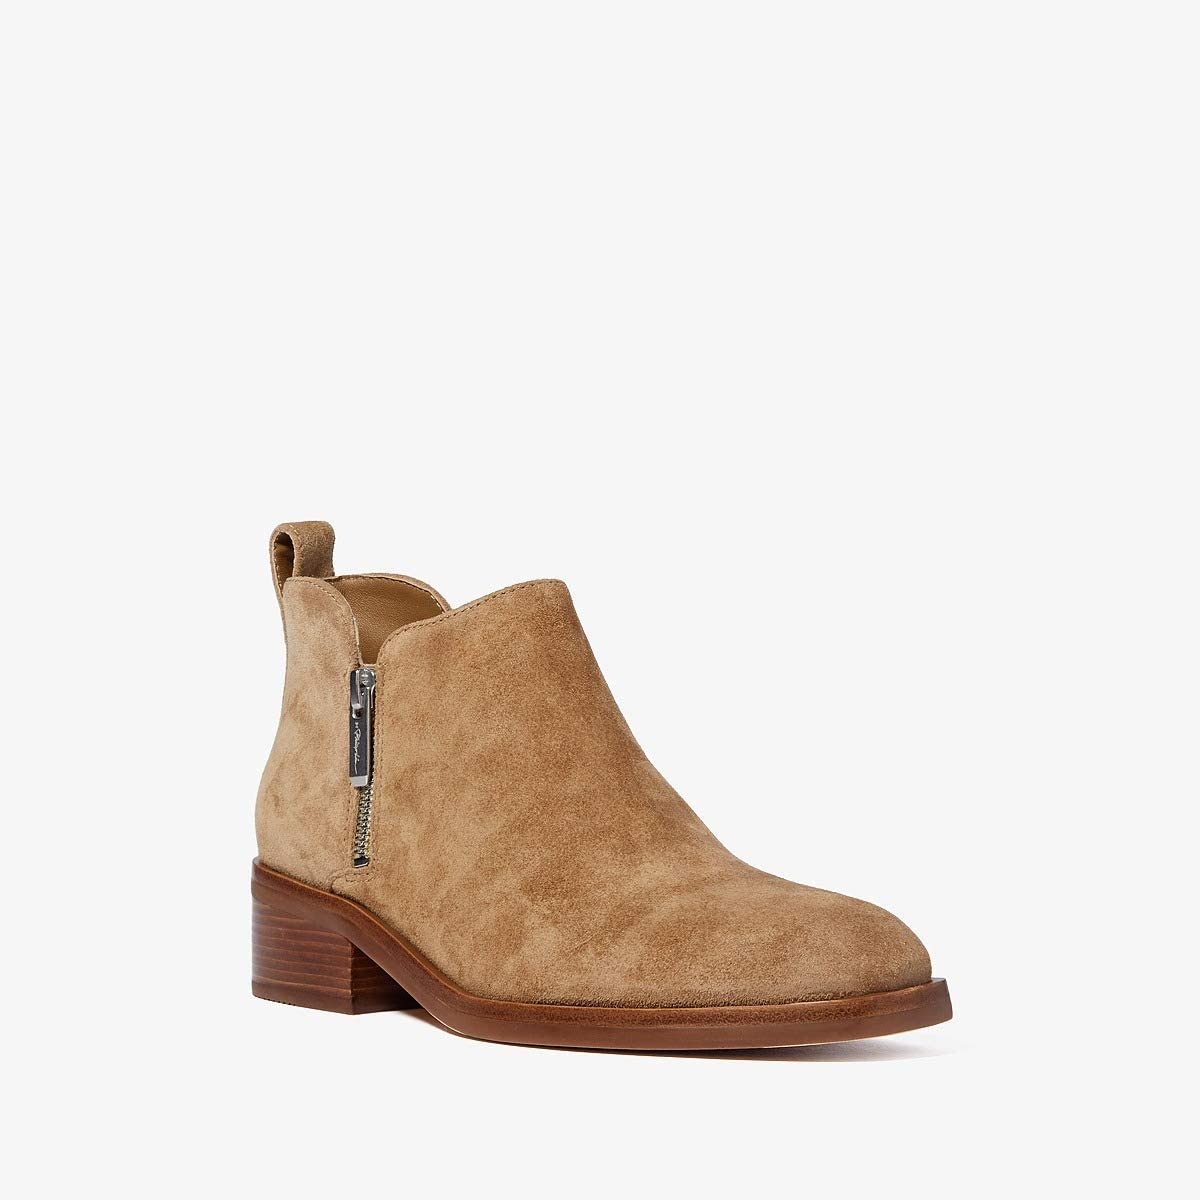 3.1 Phillip Lim Alexa 40mm Ankle Boot | Women's shoes | 2020 Newest